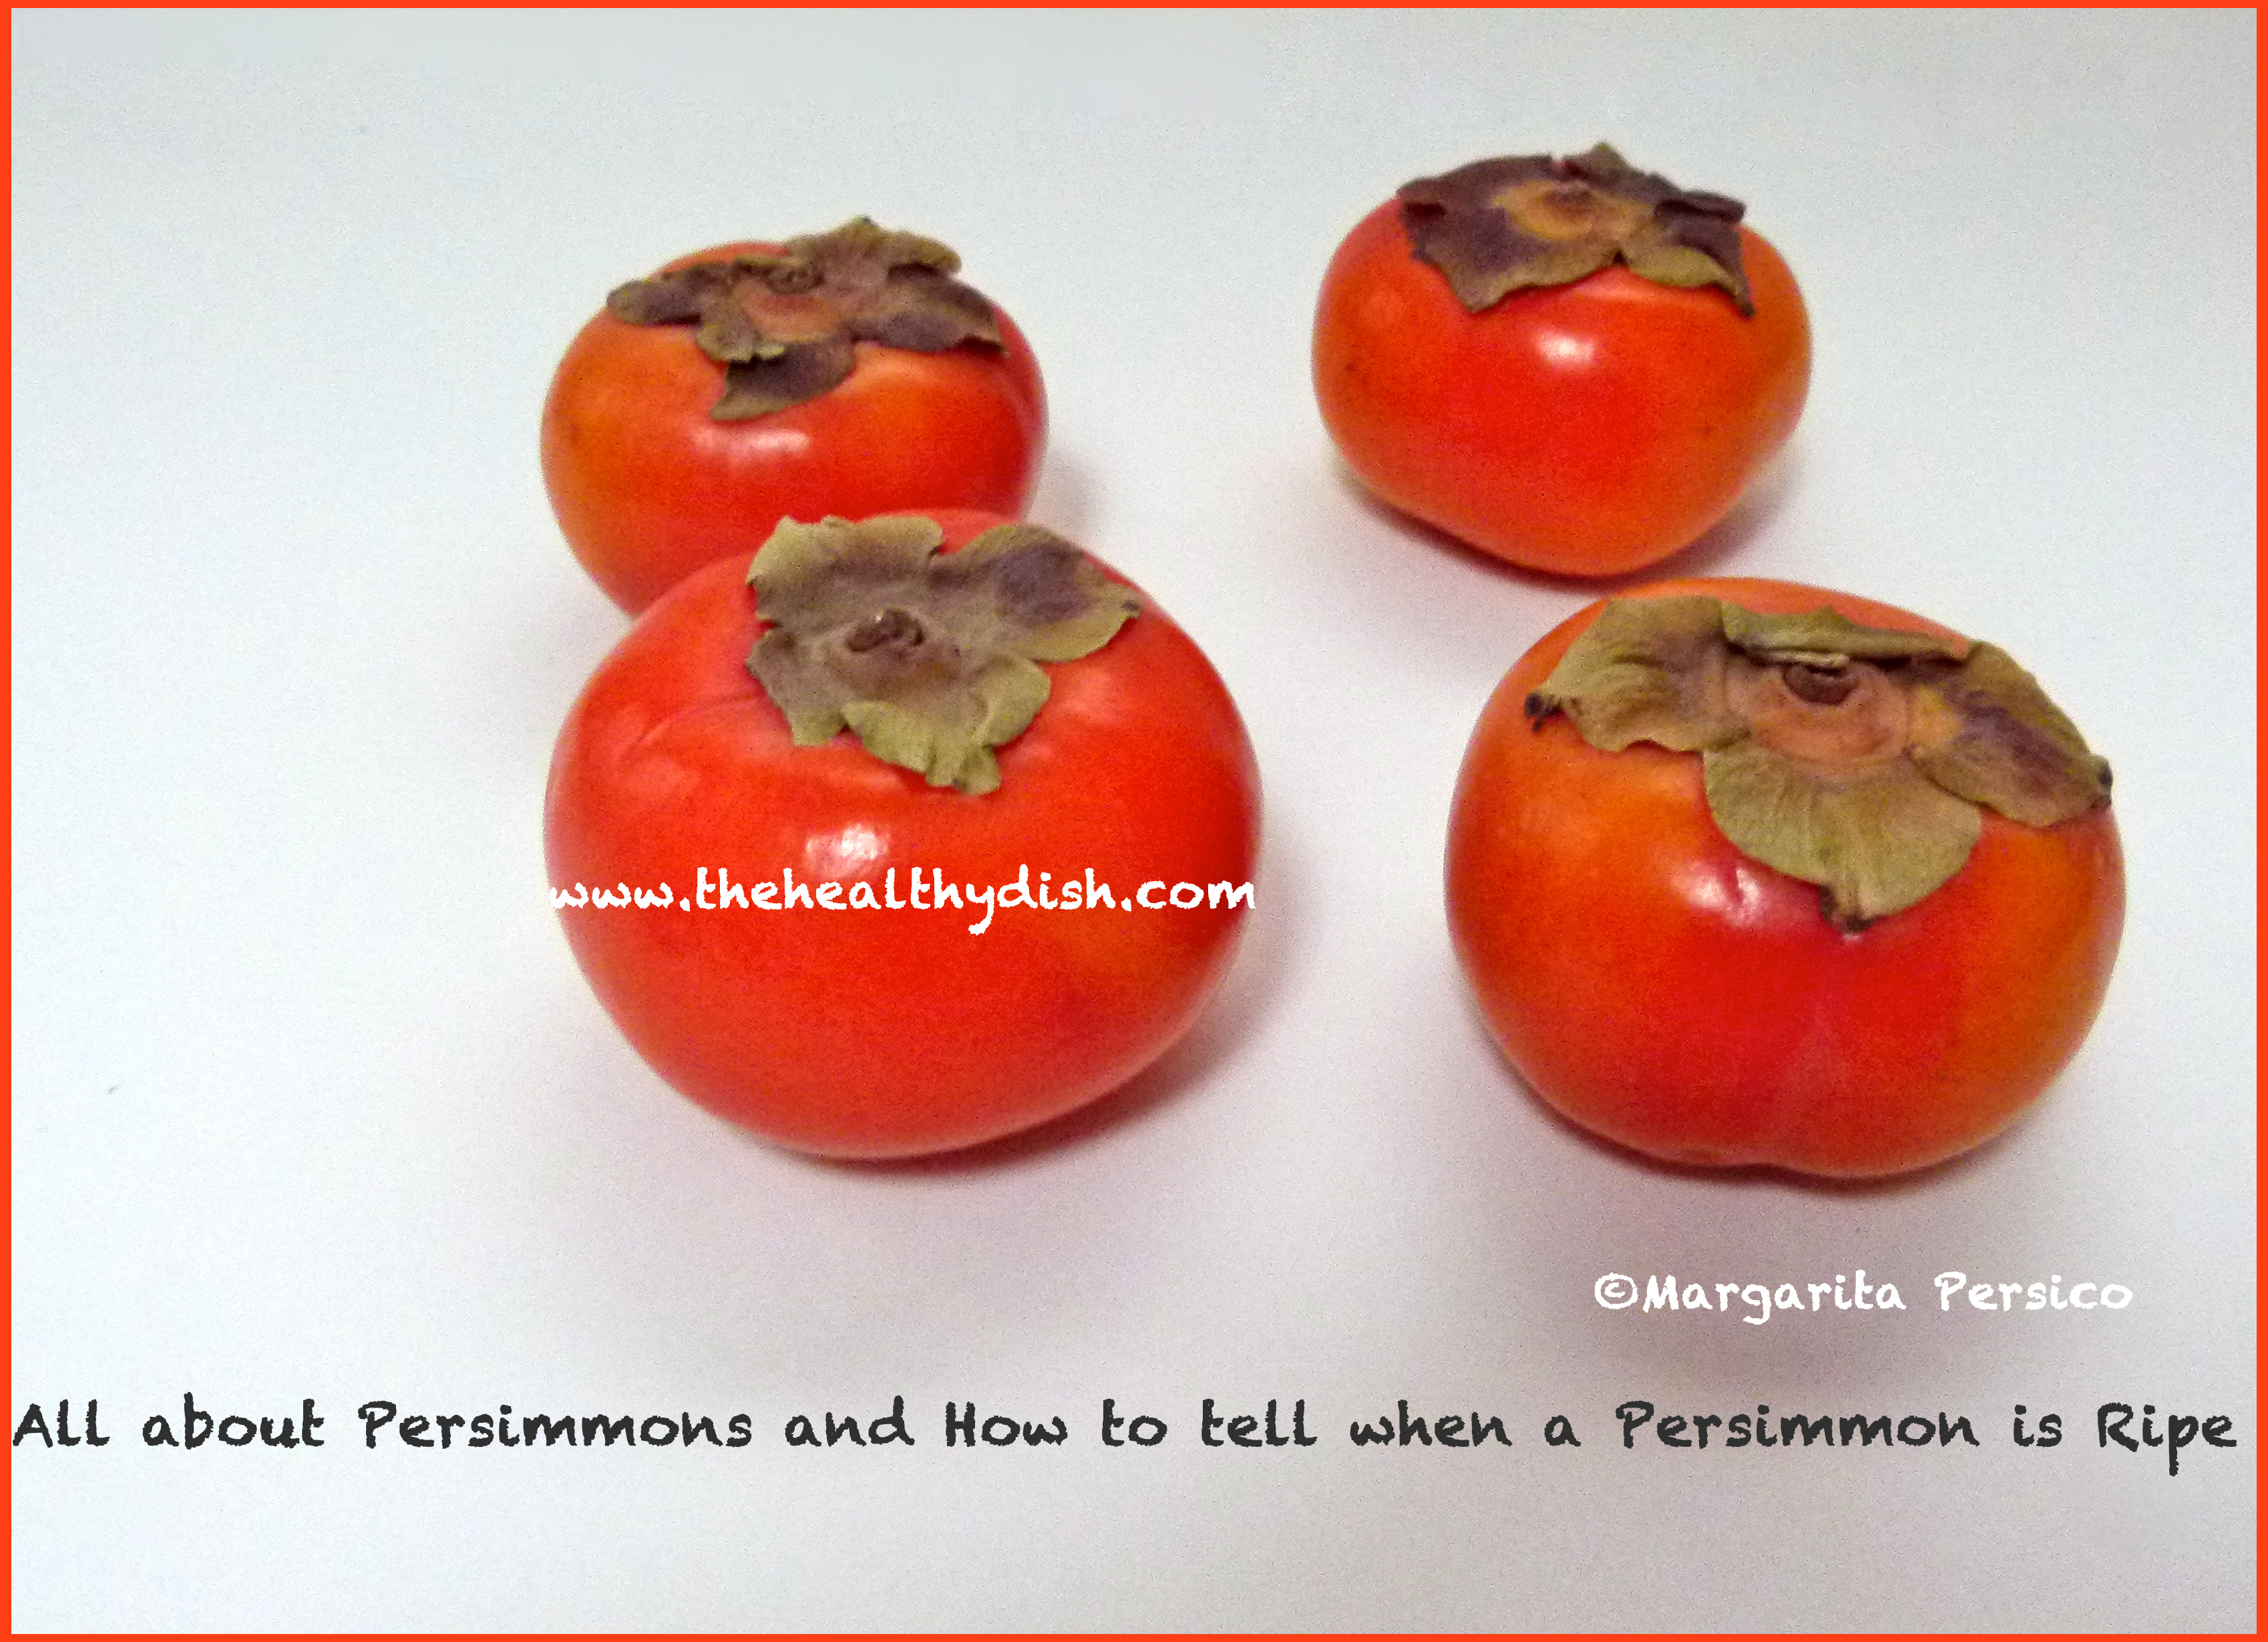 ... Persimmons and How to tell when a Persimmon is Ripe persimmons